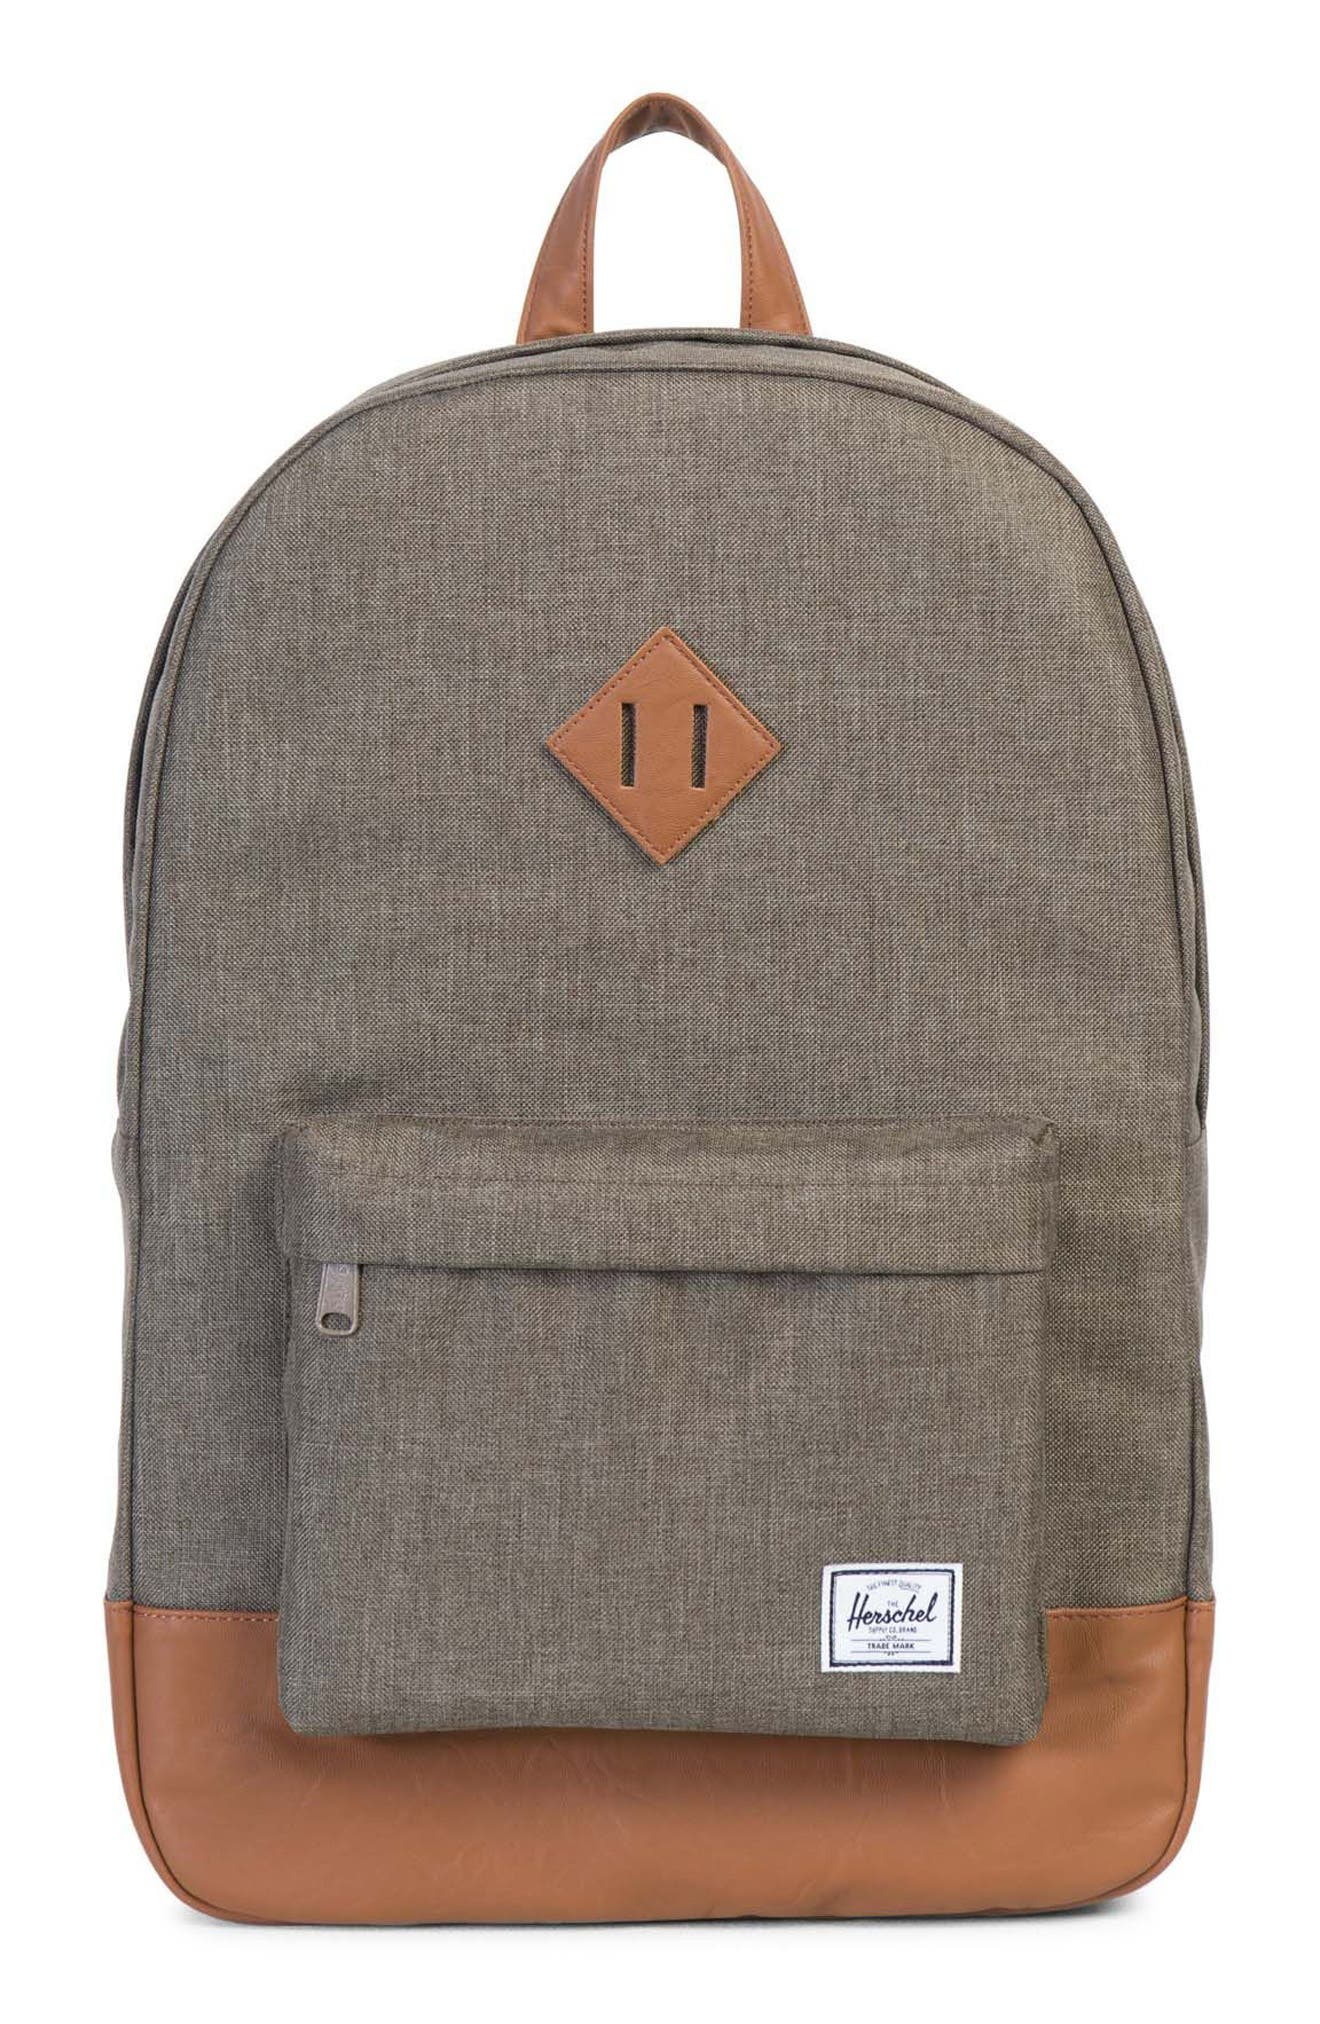 Heritage Backpack,                             Main thumbnail 1, color,                             CANTEEN CROSSHATCH/ TAN